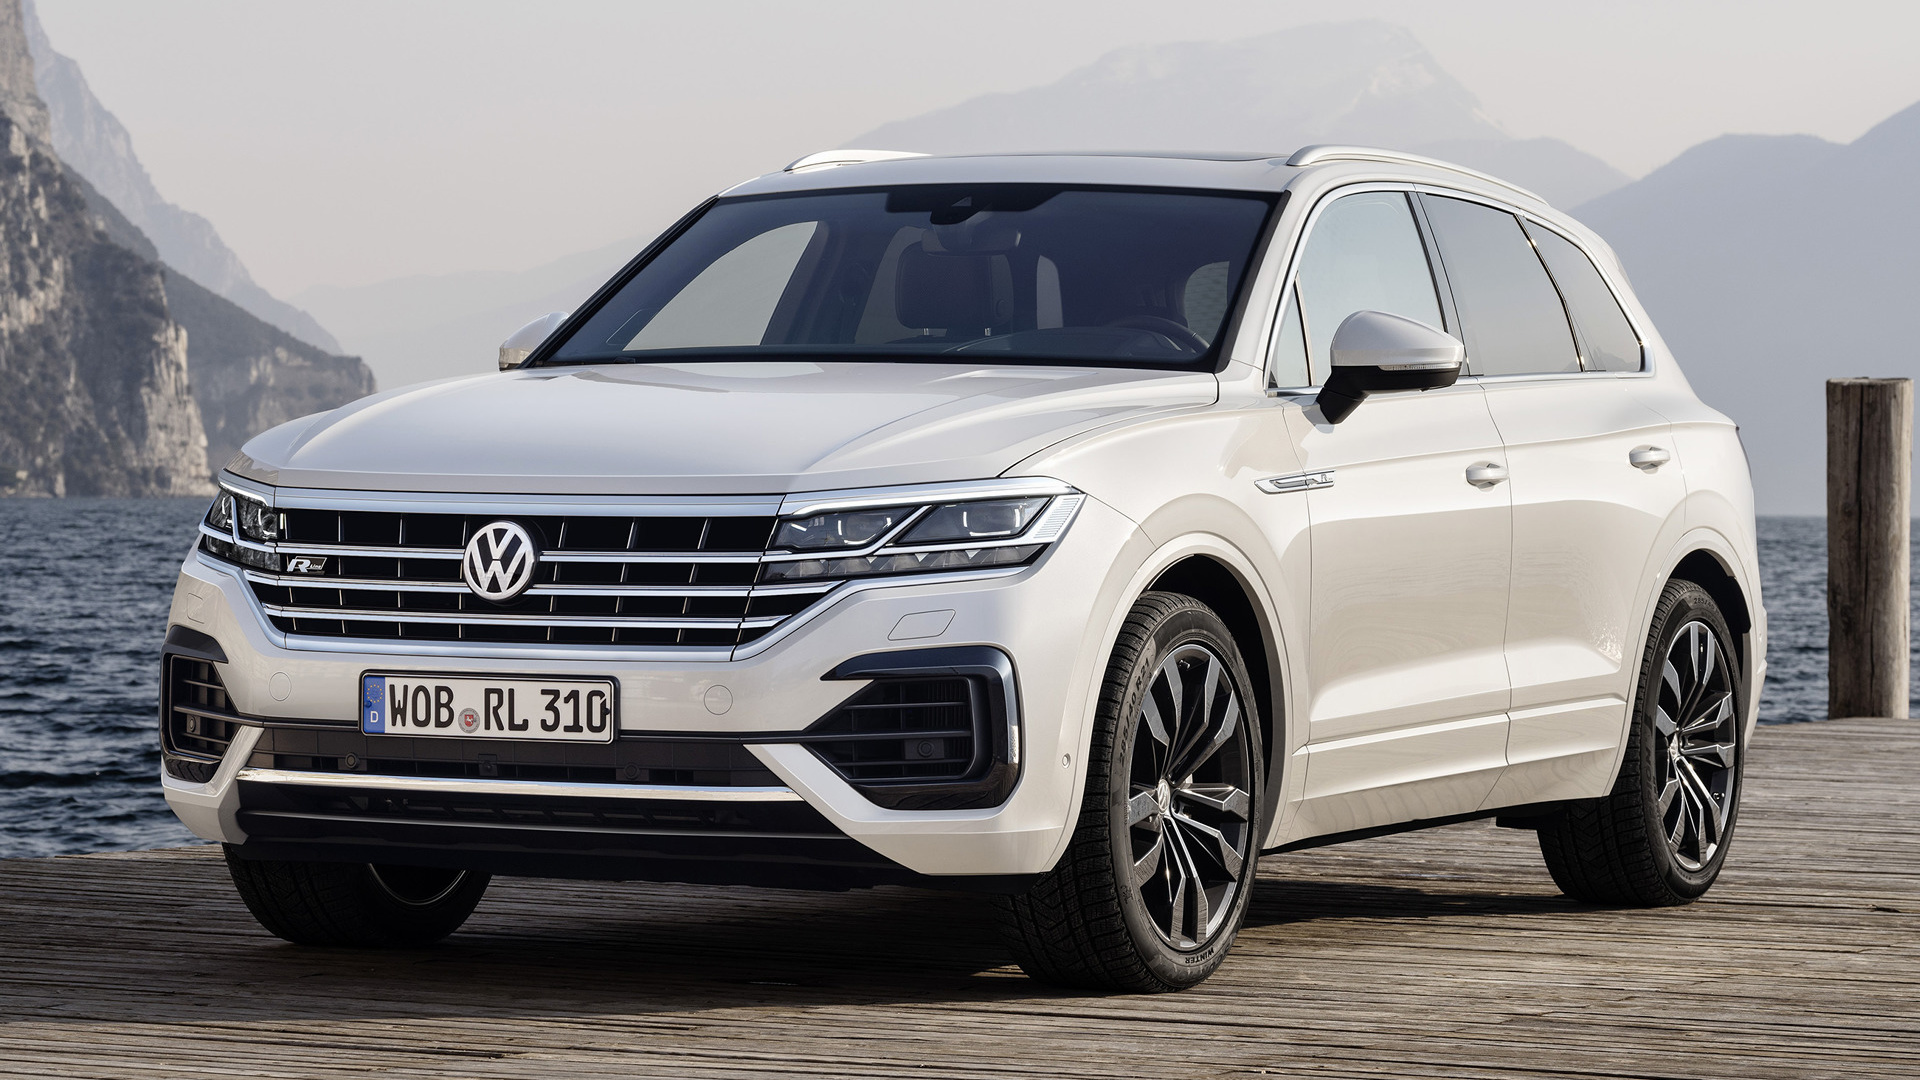 2018 volkswagen touareg r line full hd wallpaper and background image 1920x1080 id 920617. Black Bedroom Furniture Sets. Home Design Ideas